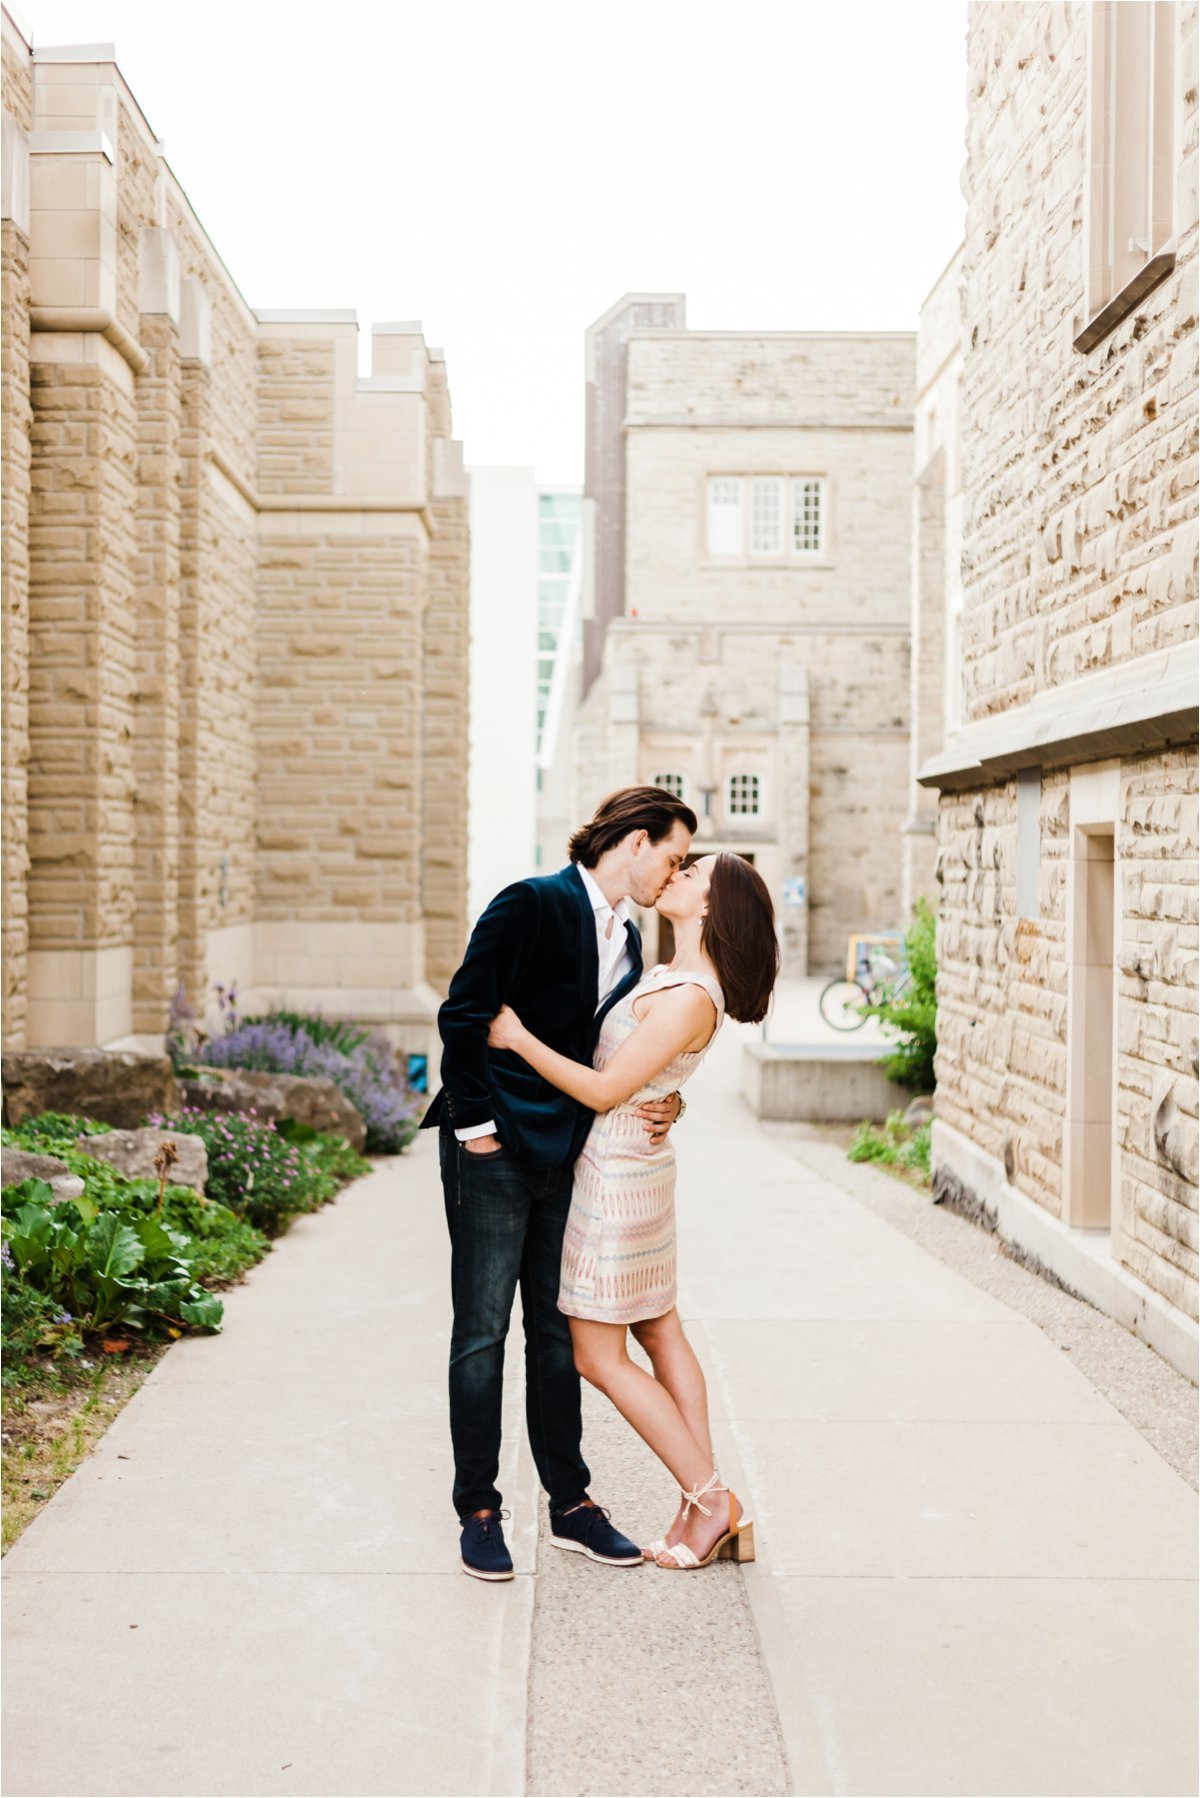 Western University Campus Engagement Session in London Ontario by Dylan and Sandra Photography